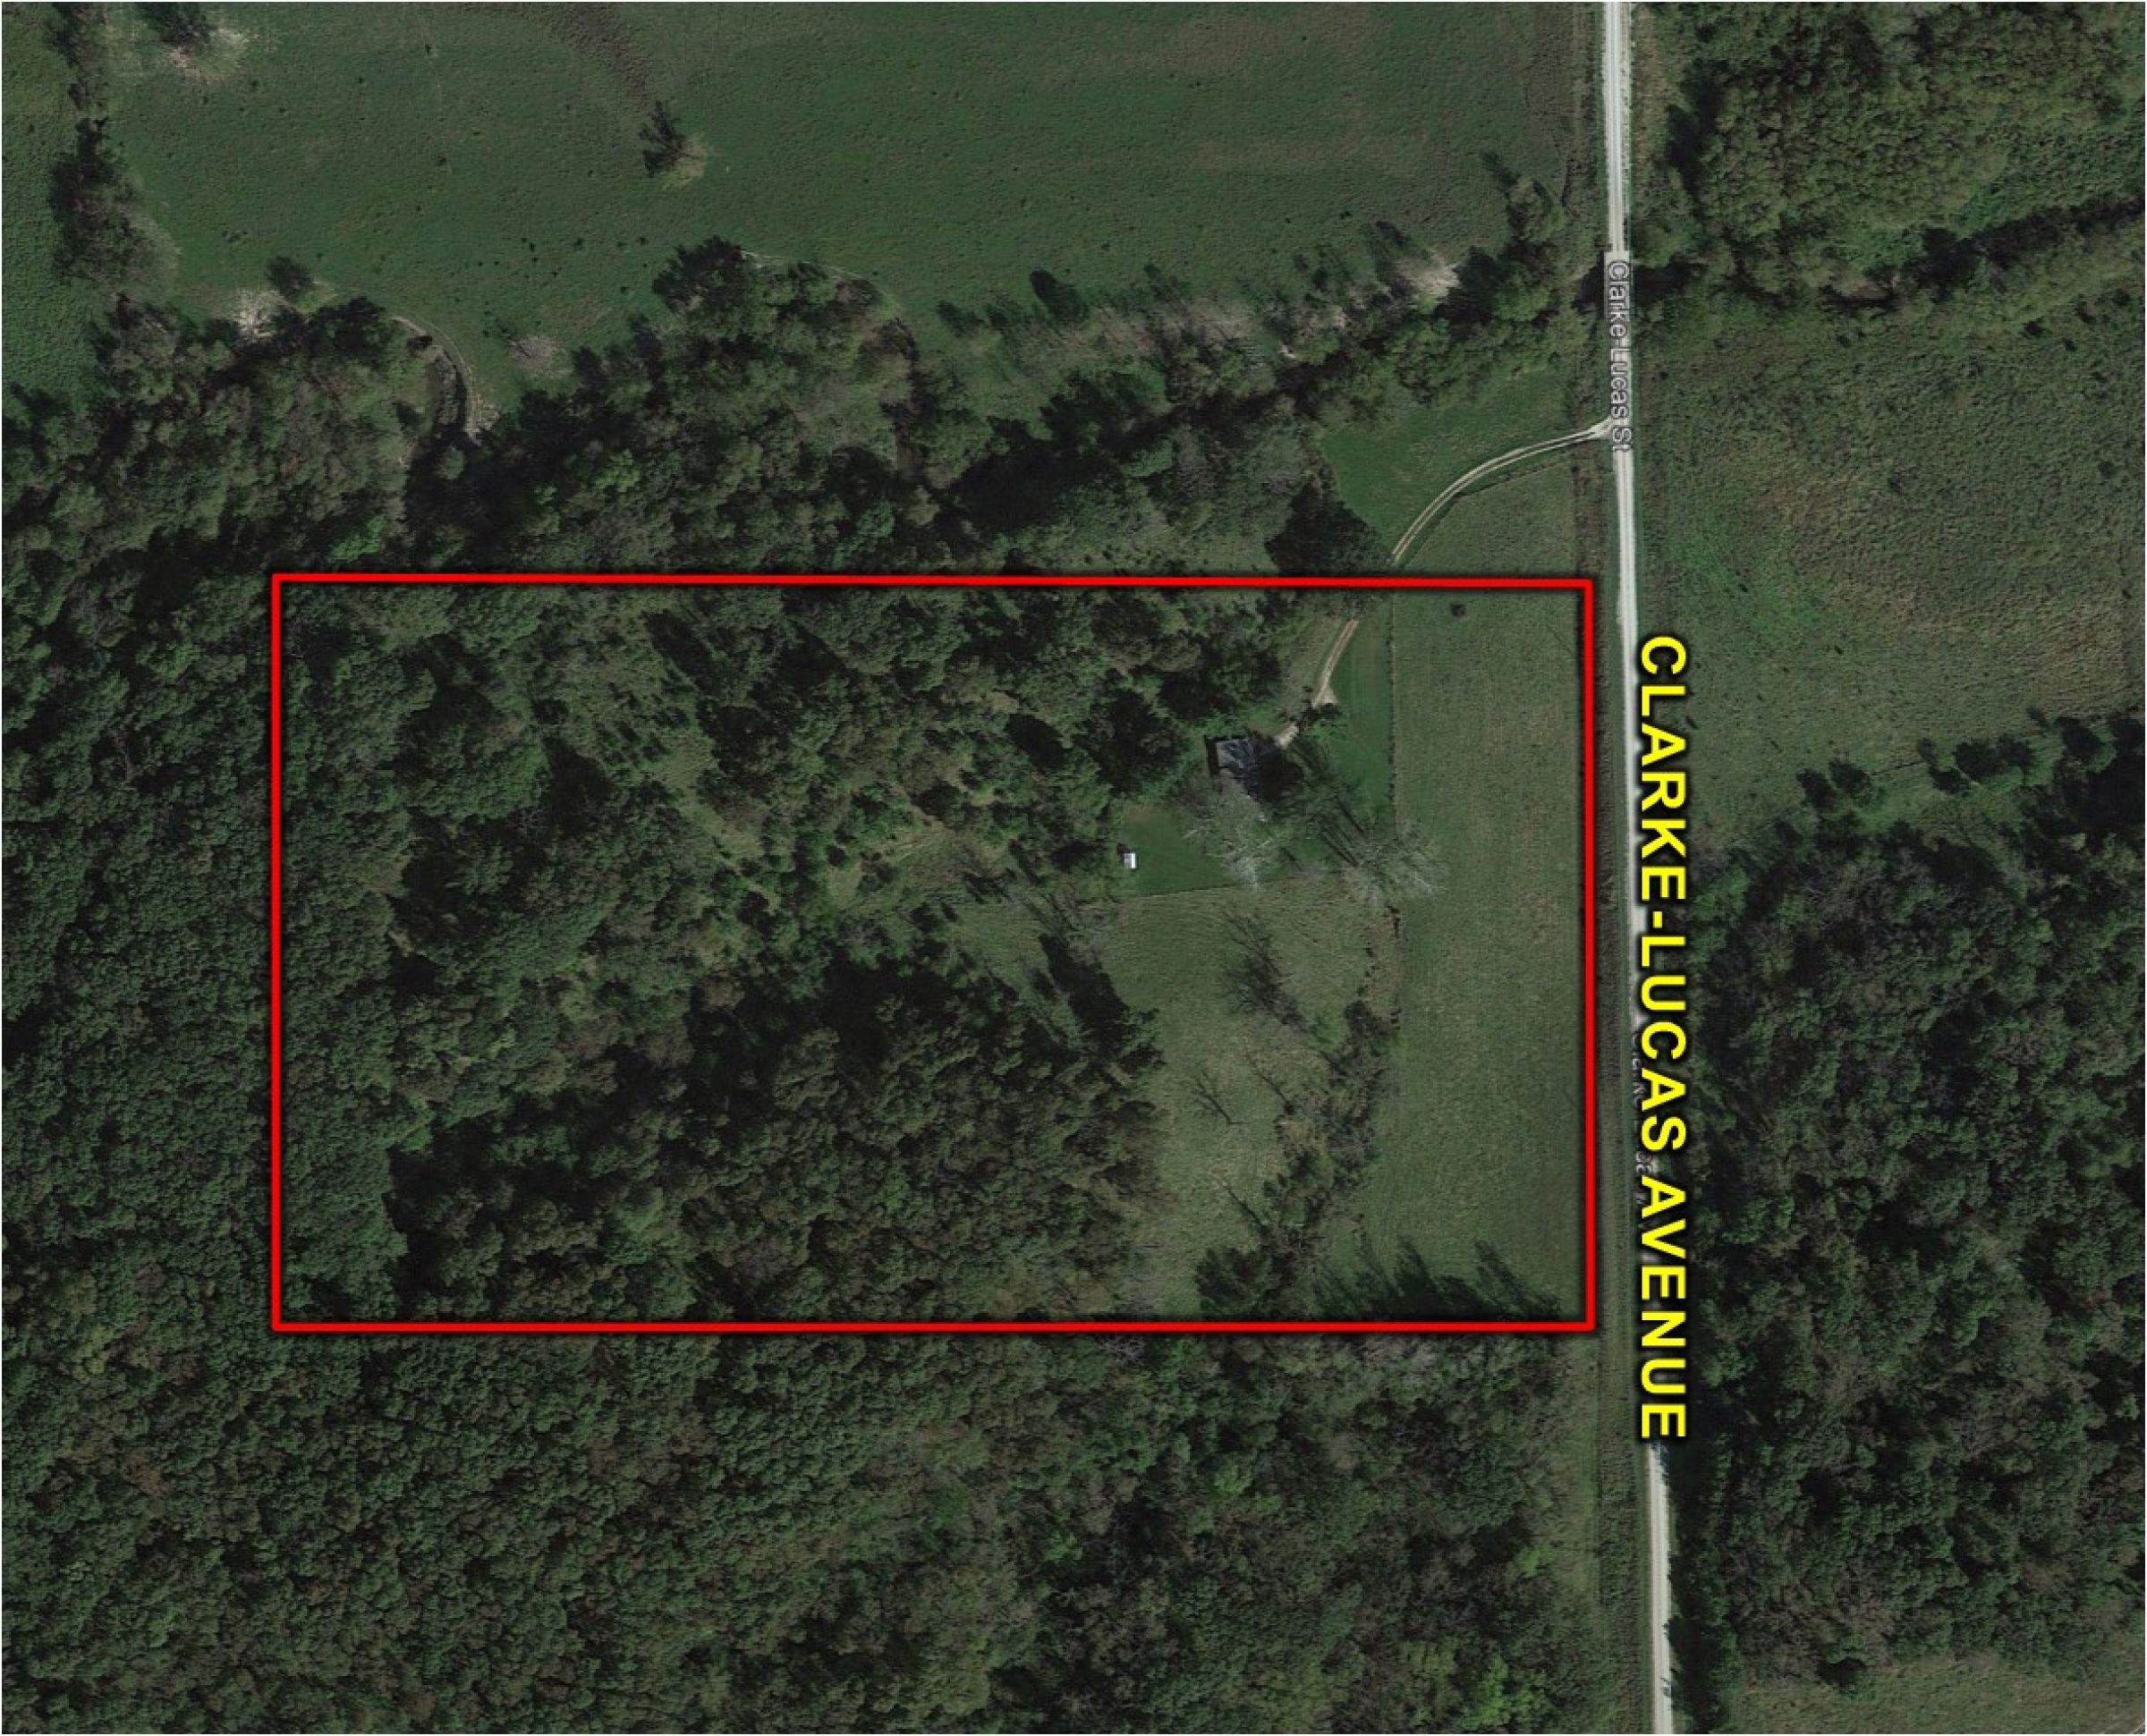 Peoples Company Land for Sale #14582-1667-clarke-lucas-avenue-woodburn-50275